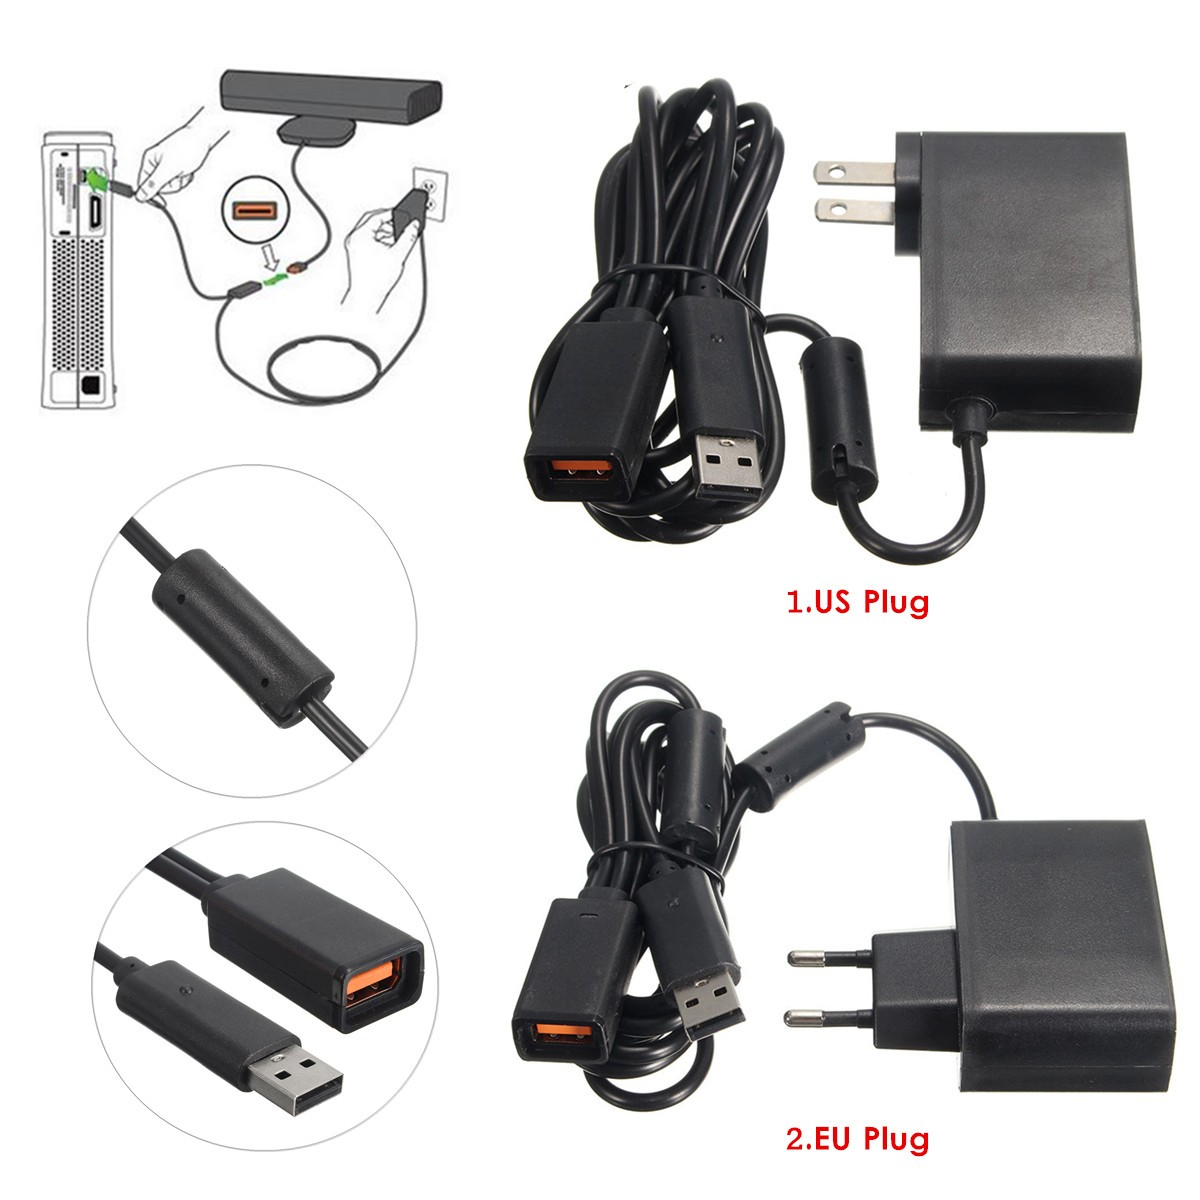 56f3d174-c5e4-4bc6-805e-75bc35b7da4a Xbox Kinect Wire Diagram on power adapter, nigeria microsoft, games collection, power cord, hook up, light show, connection back, games for kids, sensor adapter, sports season 2,